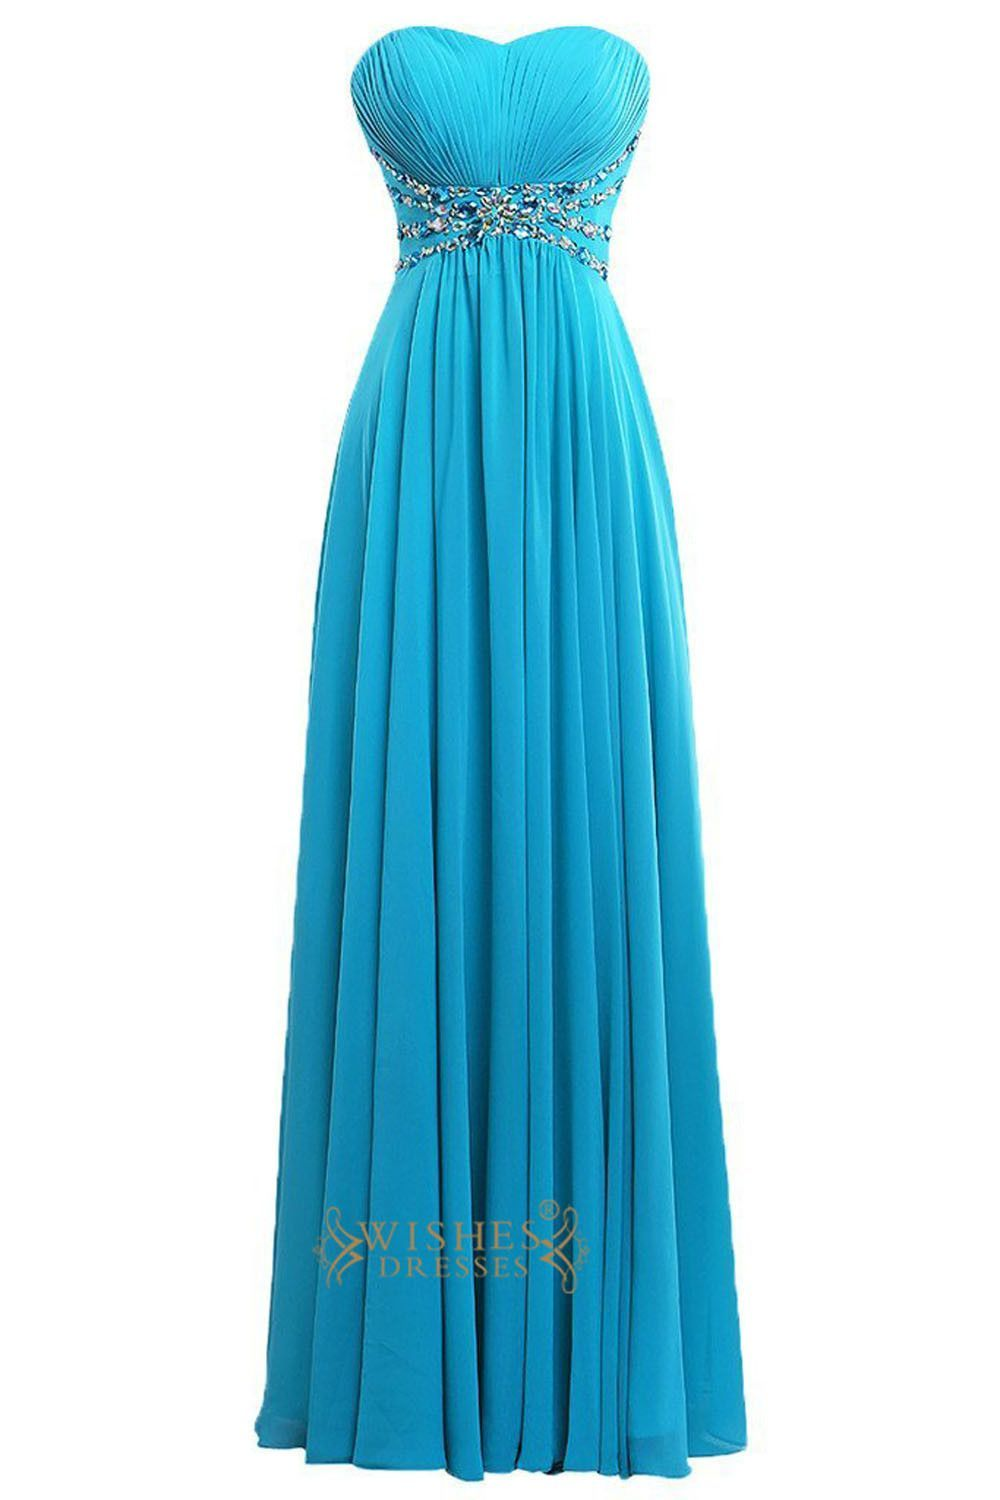 A-line Ocean Blue Beaded Details Chiffon Long Prom Dresses Am182 ...